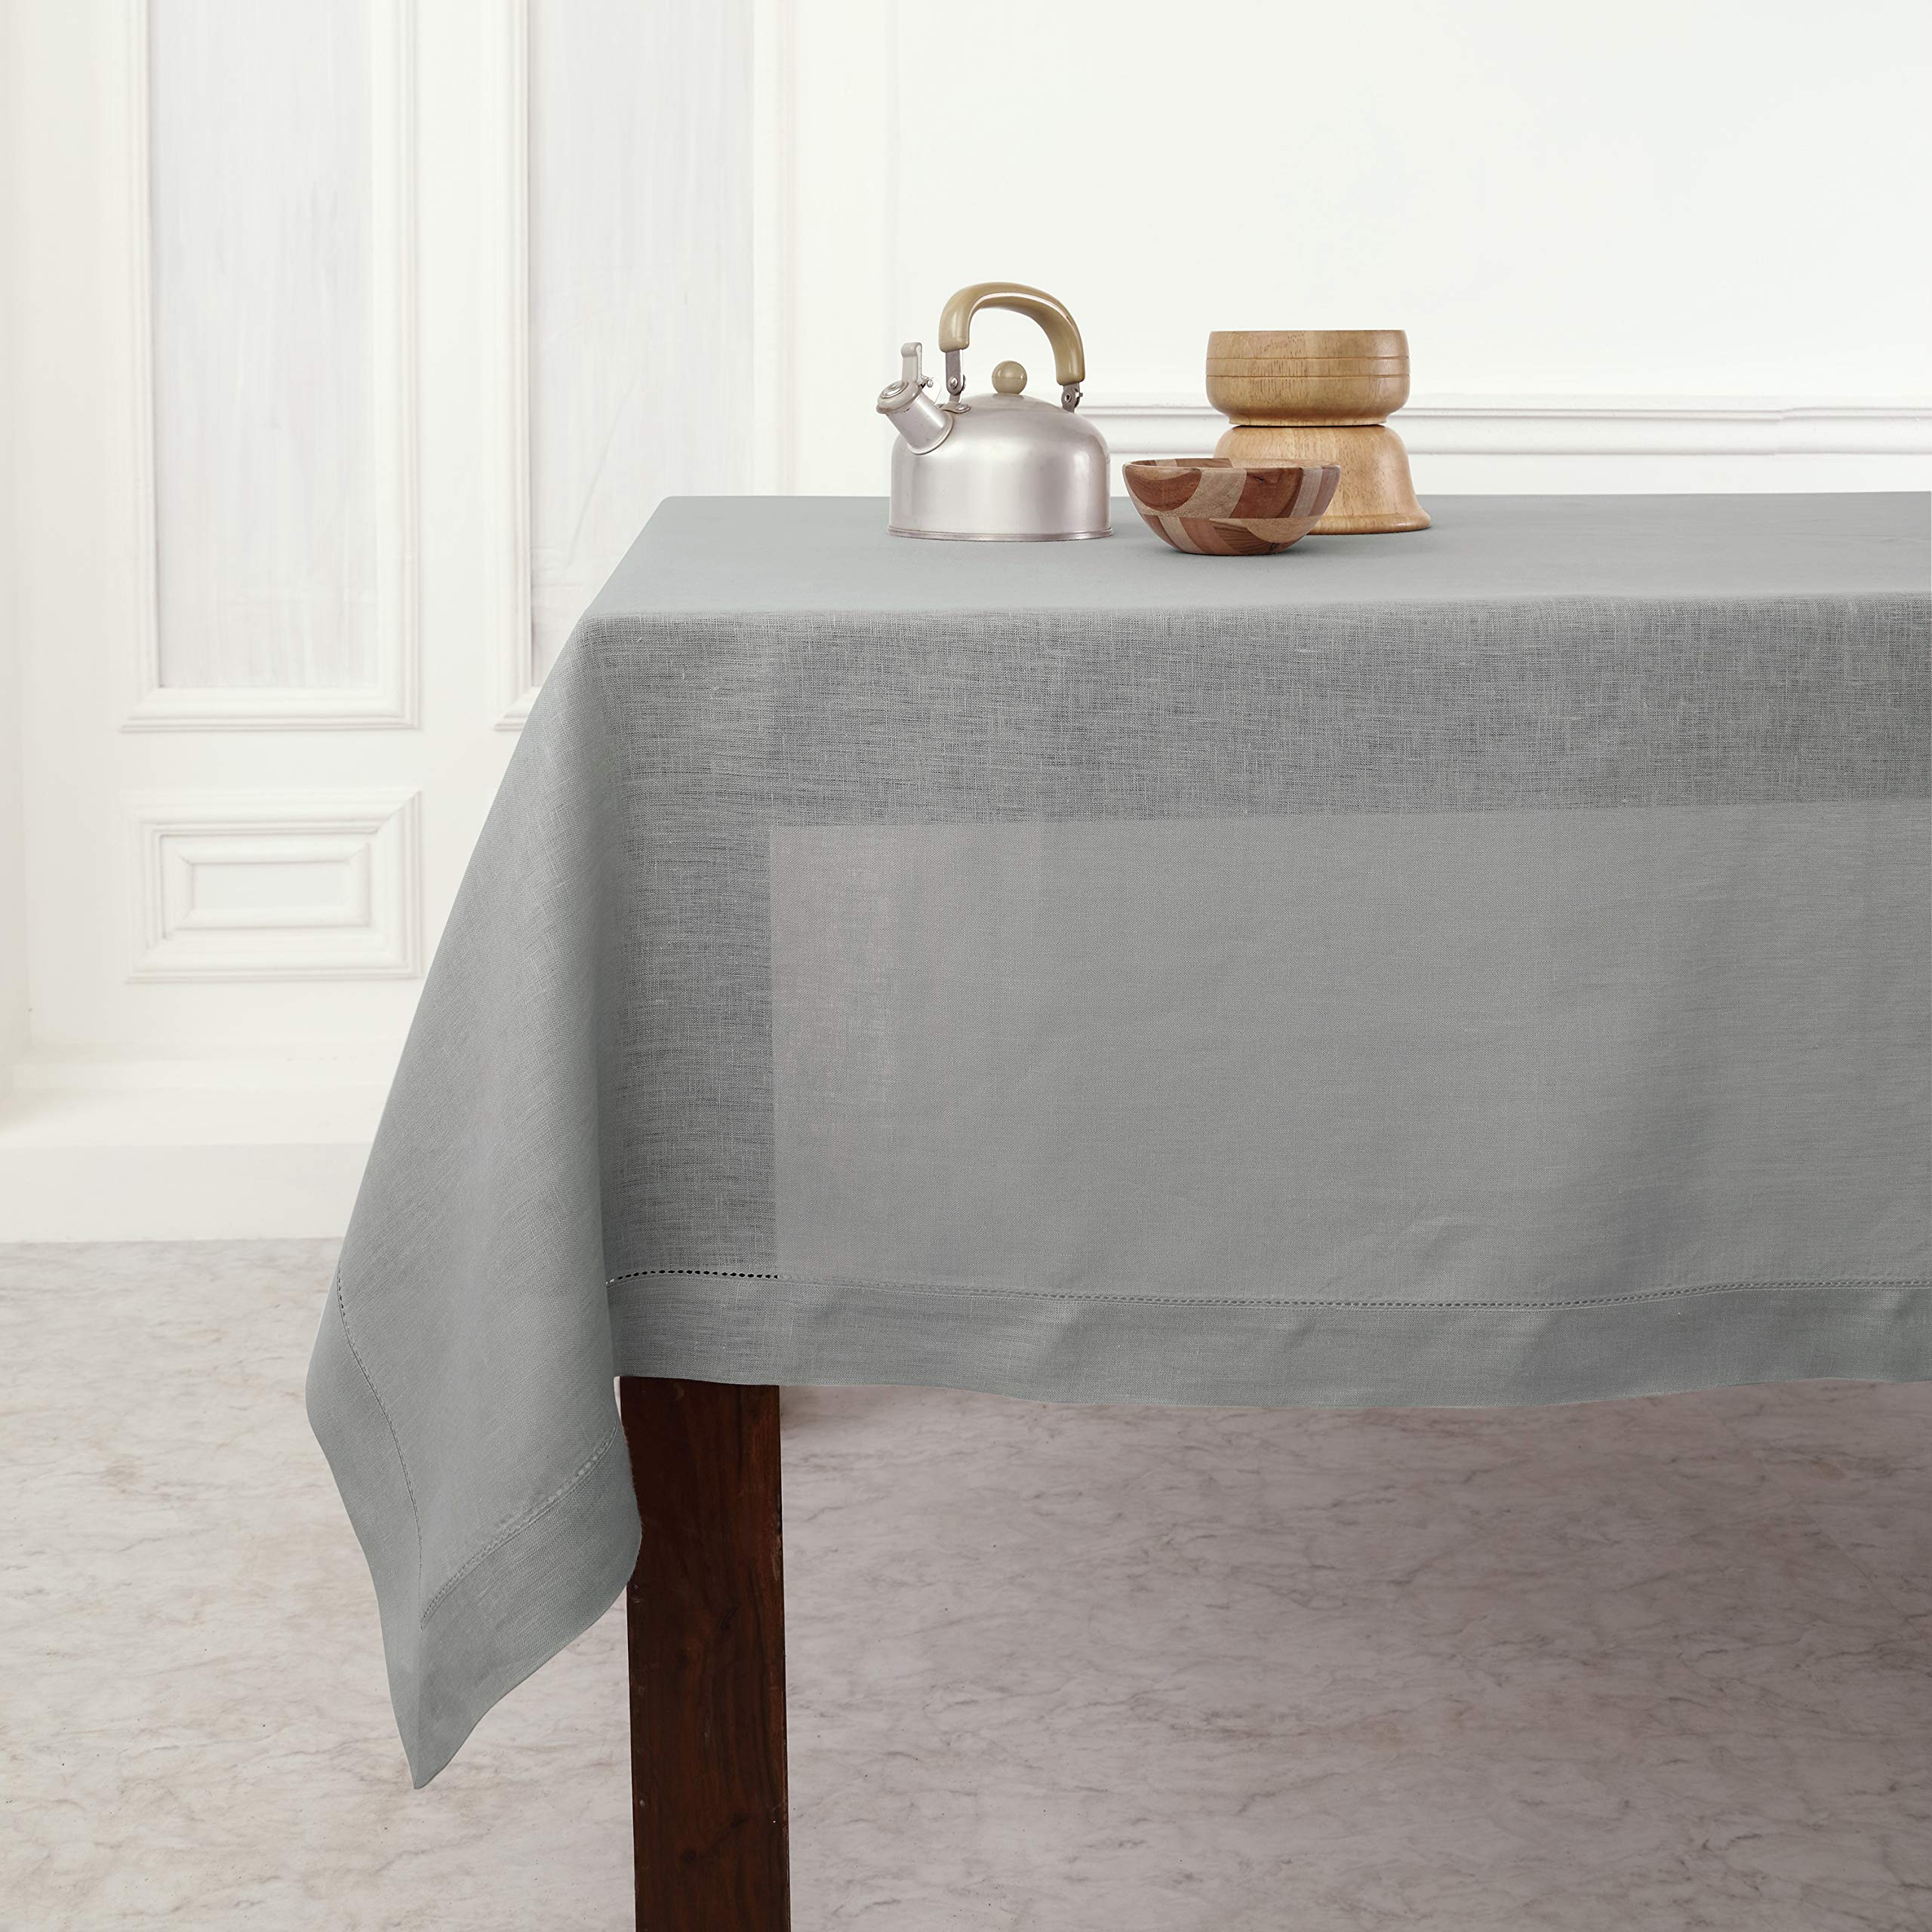 Solino Home Hemstitch Linen Tablecloth - 60 x 120 Inch, 100% Pure Linen Soft Grey Tablecloth for Indoor and Outdoor use